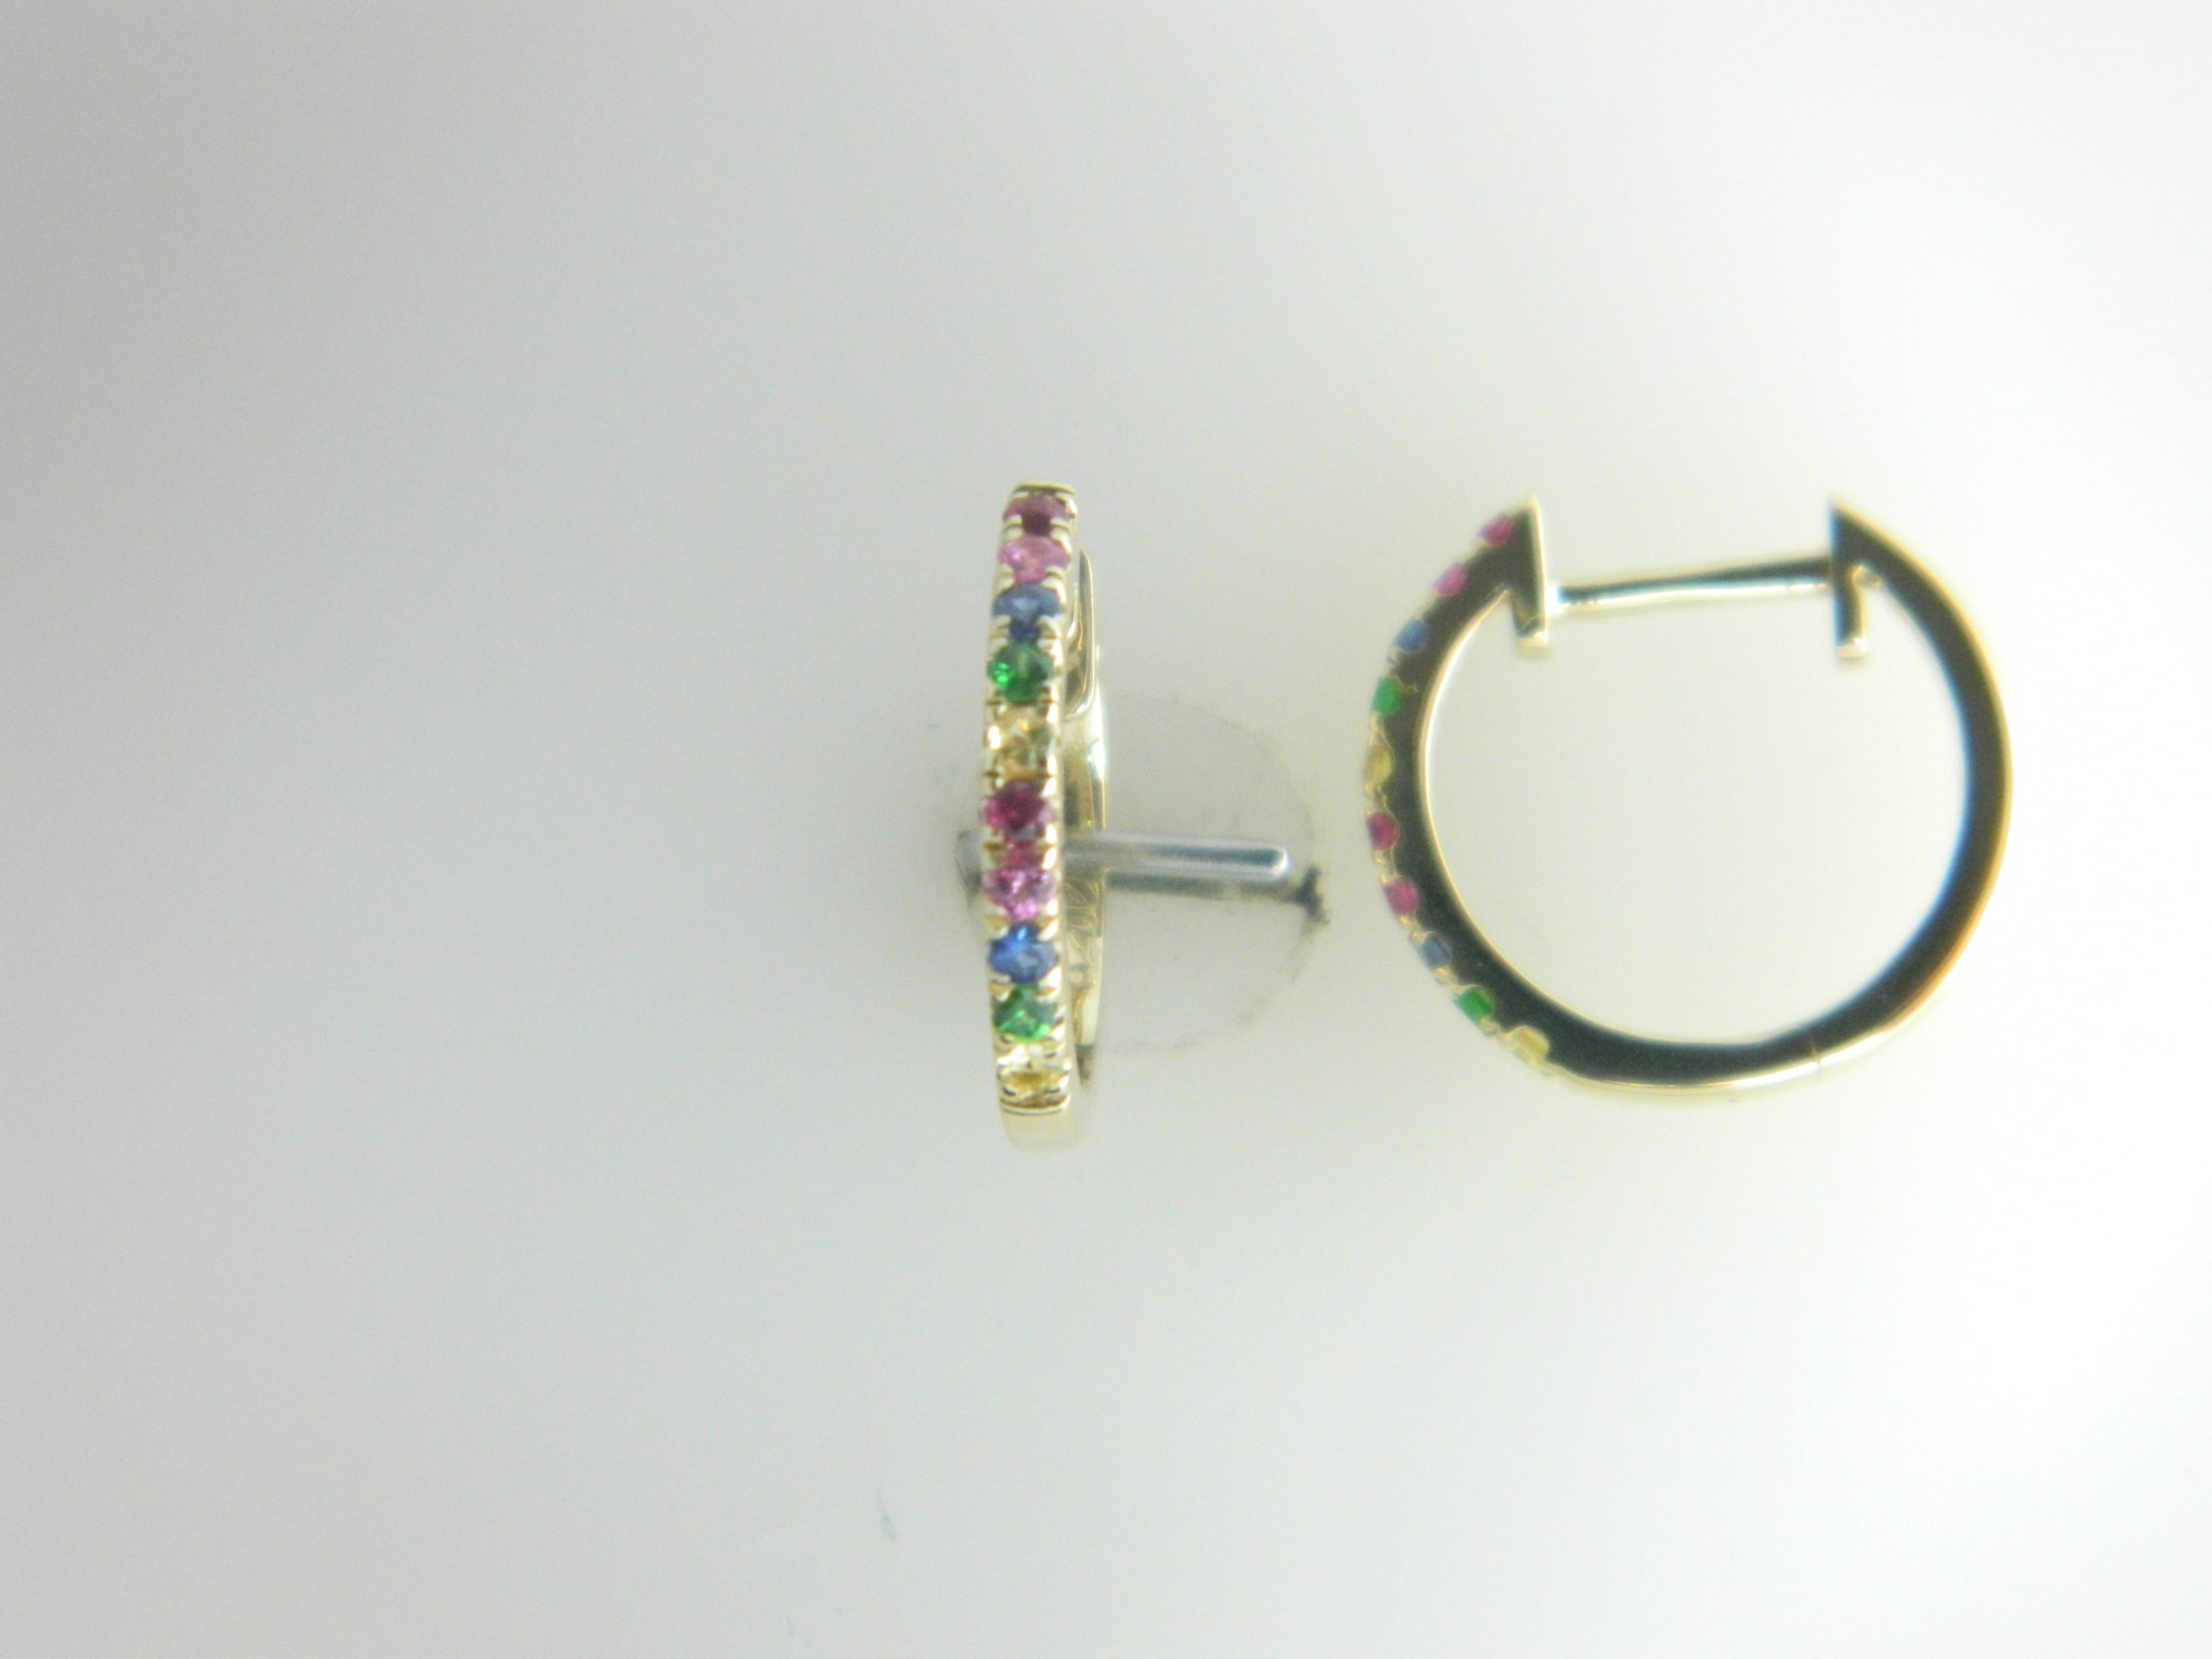 14 Karat Yellow Gold Hoop Mounted Earrings with 4 Sapphire 0.03ct, 4 Pink Sapphires 0.03ct, 4 Rubies 0.03ct, 4 Multi-Color Sapphires 0.03ct and 4 Green Garnets 0.03ct tw.